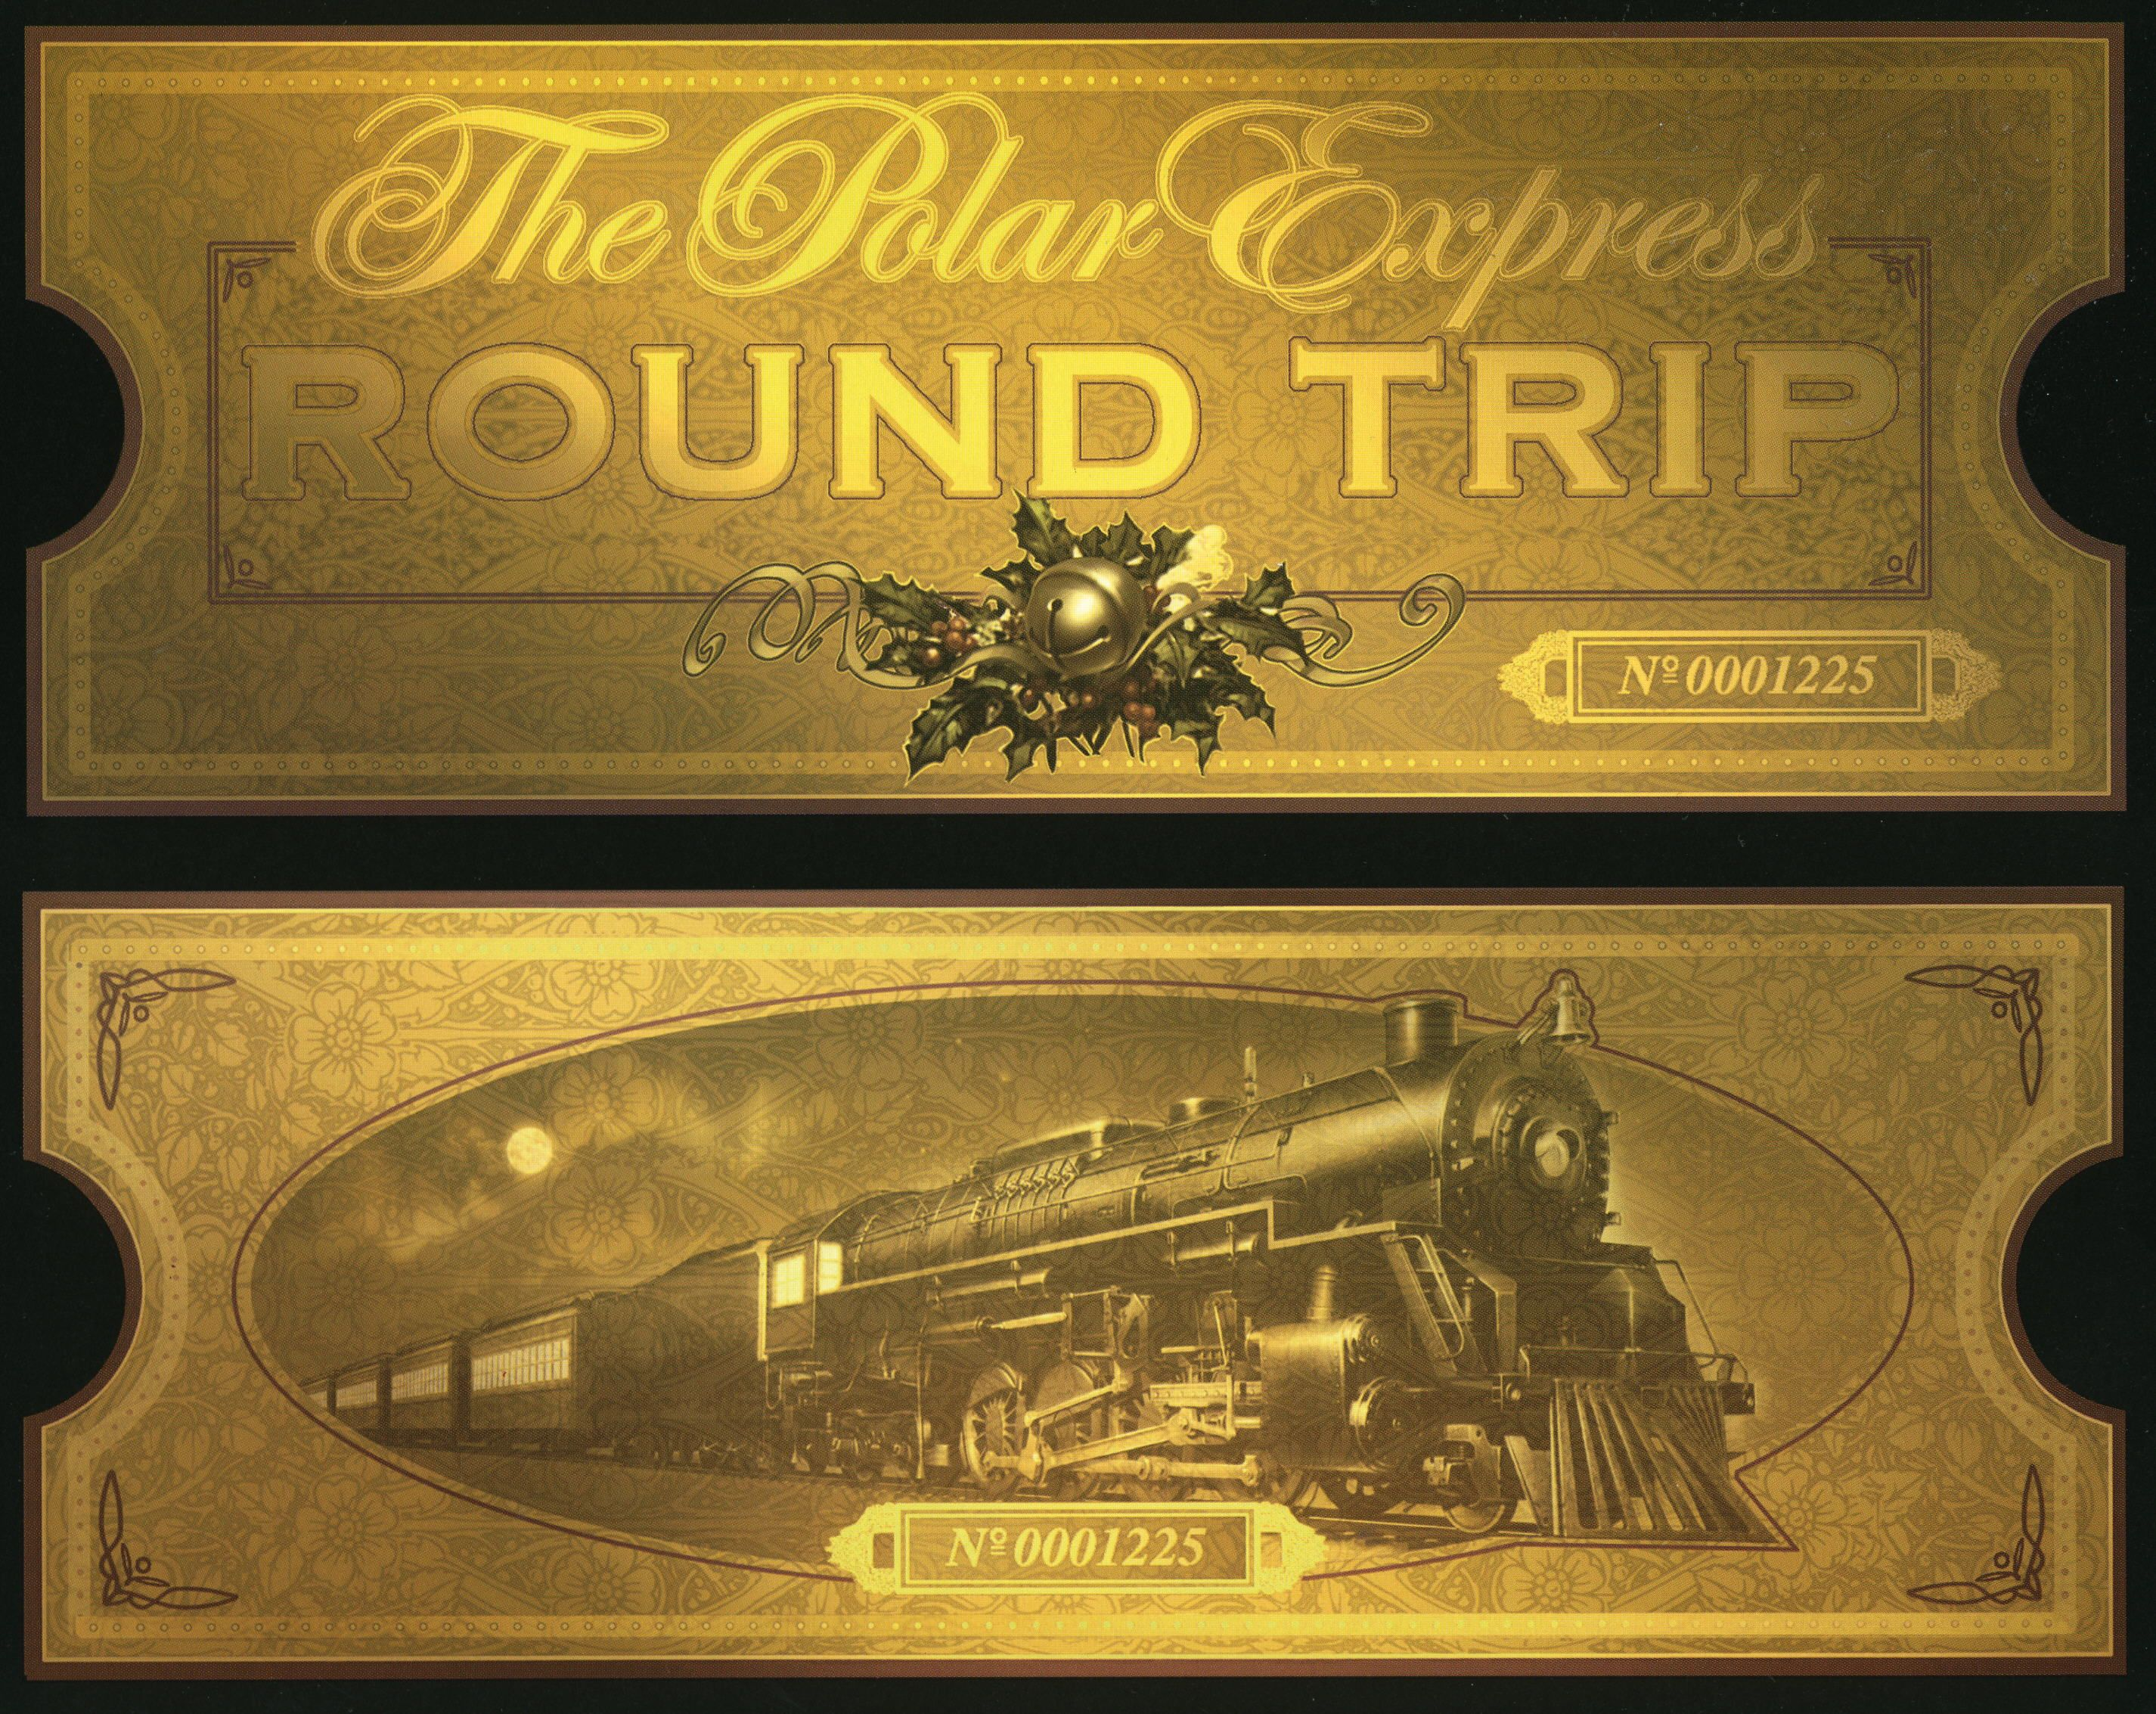 Polar express printable ticket I plan on printing these out for – Free Ticket Printing